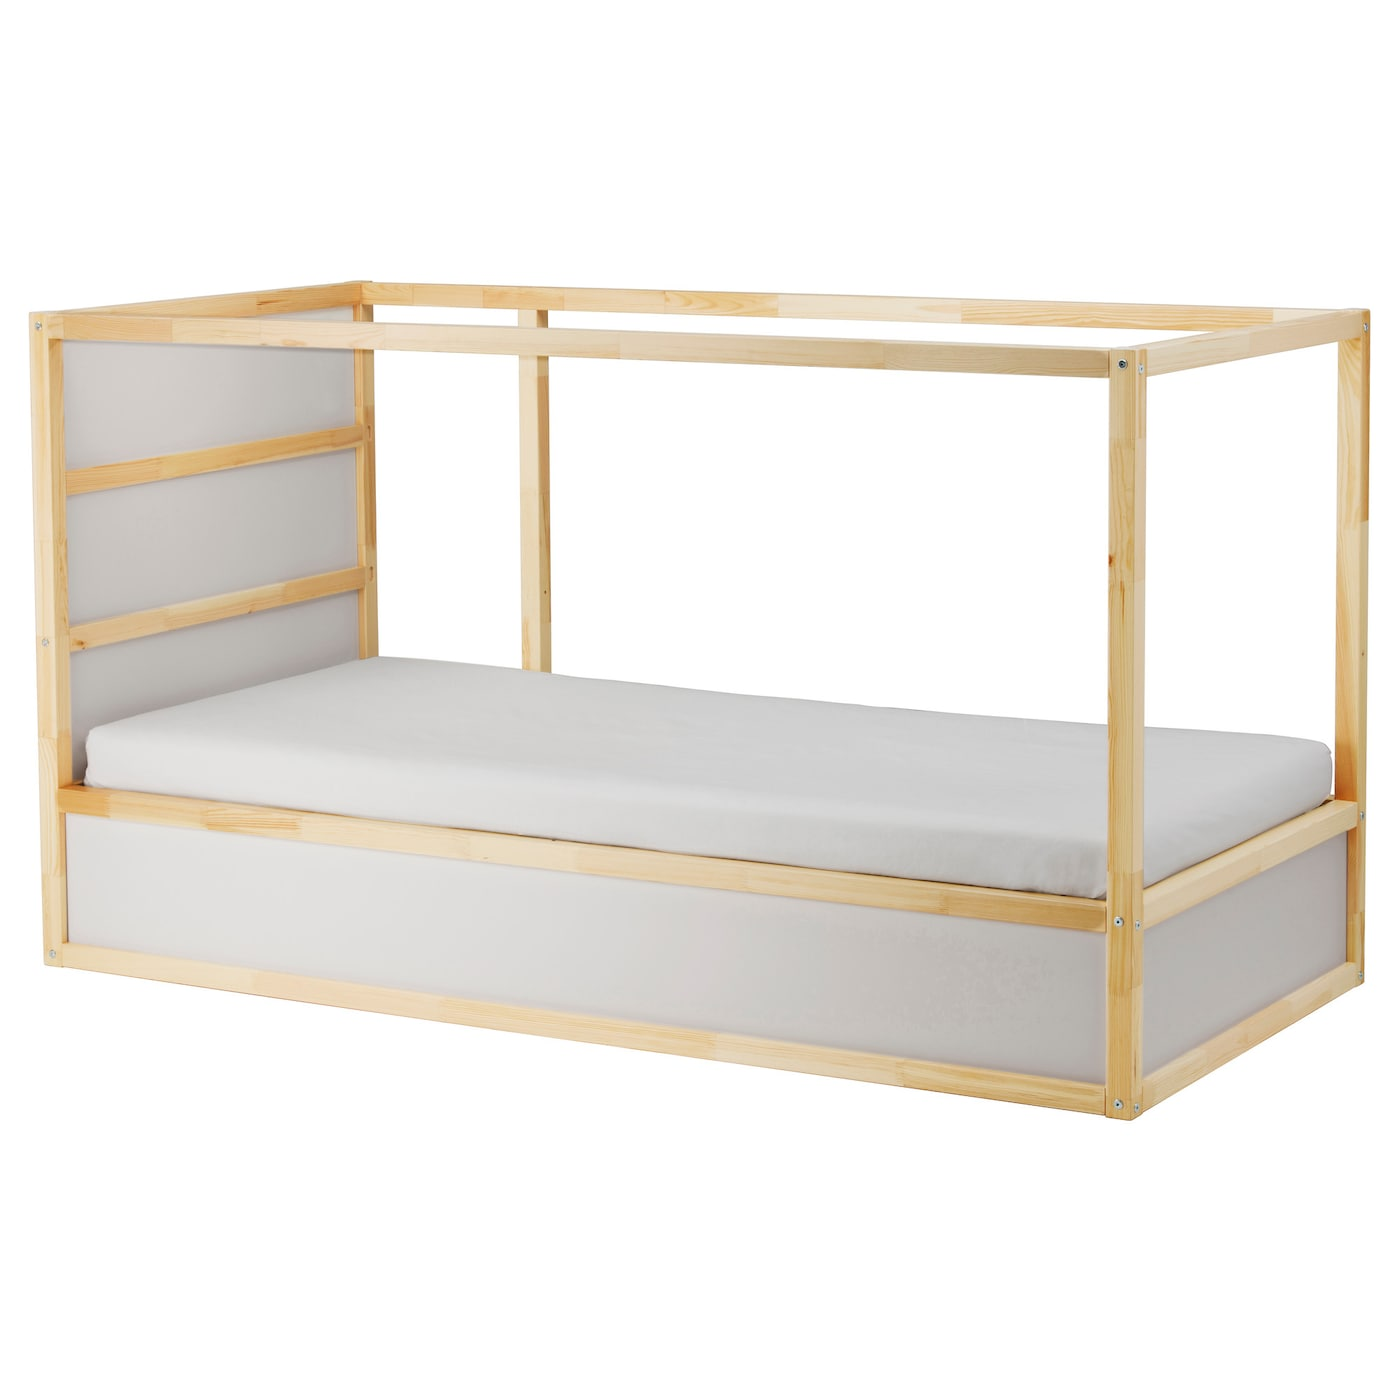 kura reversible bed white pine 90 x 200 cm ikea. Black Bedroom Furniture Sets. Home Design Ideas